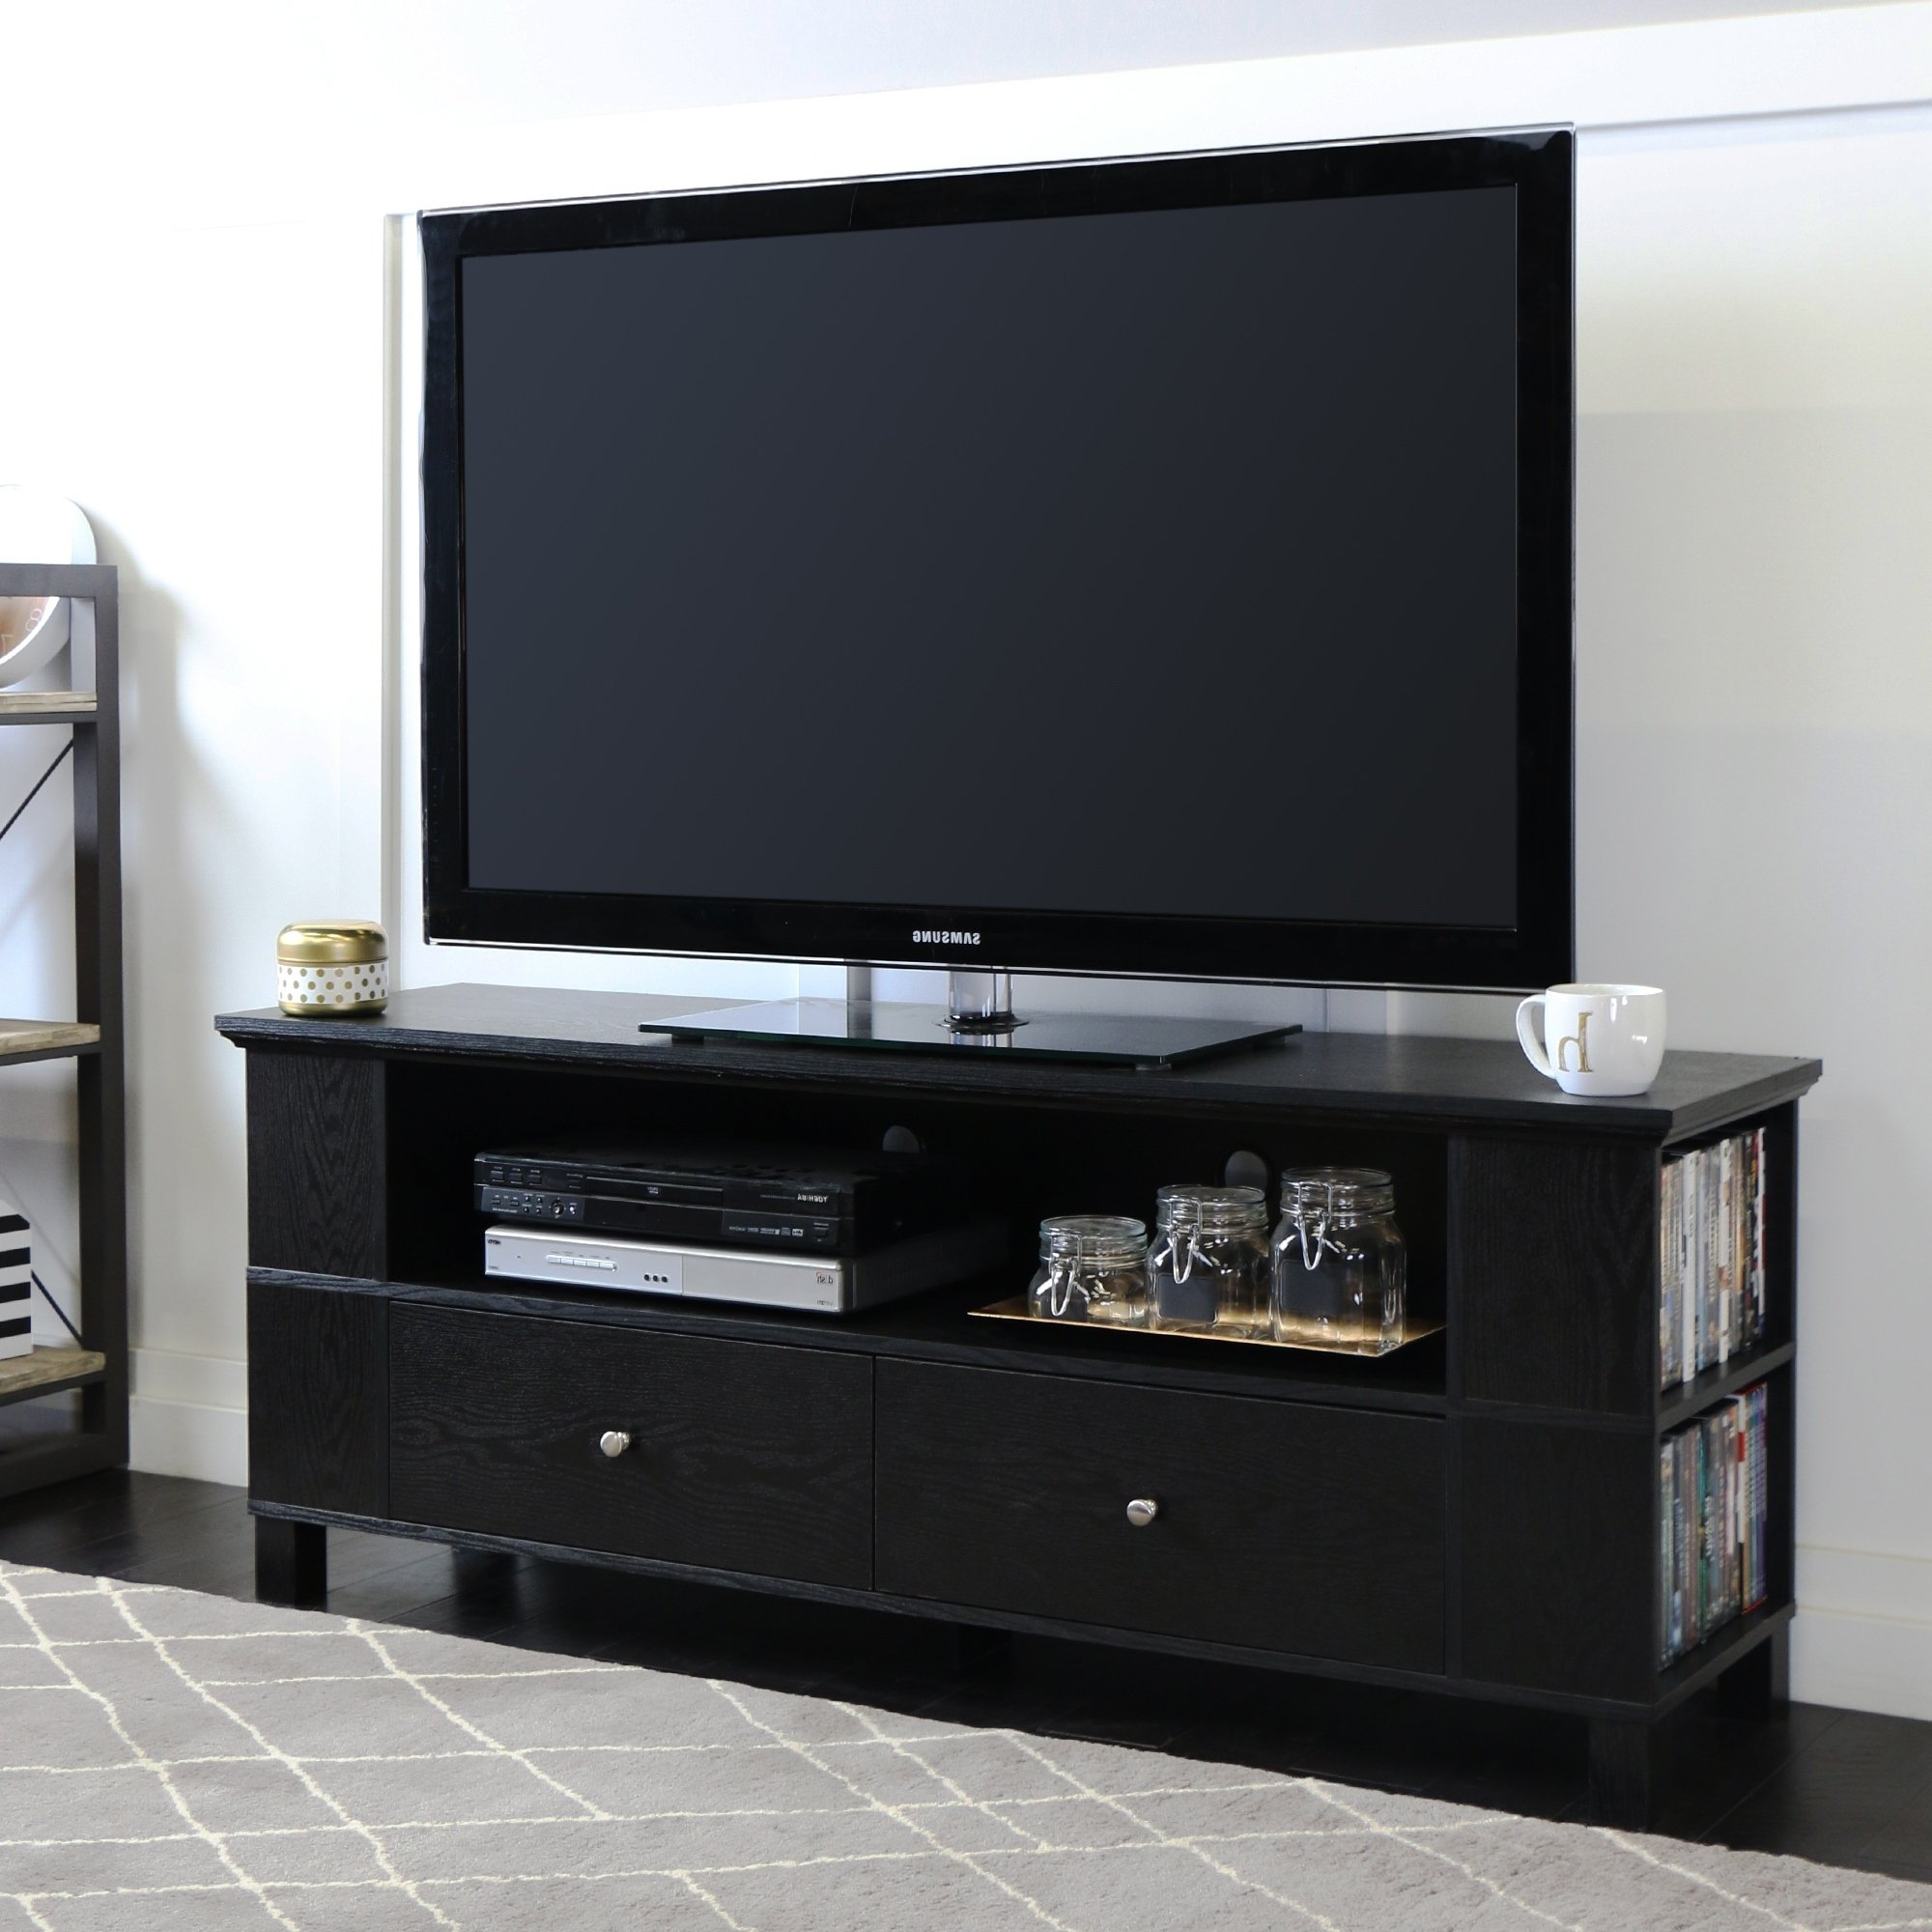 """Tv Stands For 43 Inch Tv Throughout 2018 Shop 59"""" Tv Stand Storage Console – Black – 60 X 16 X 23h – On Sale (View 16 of 20)"""